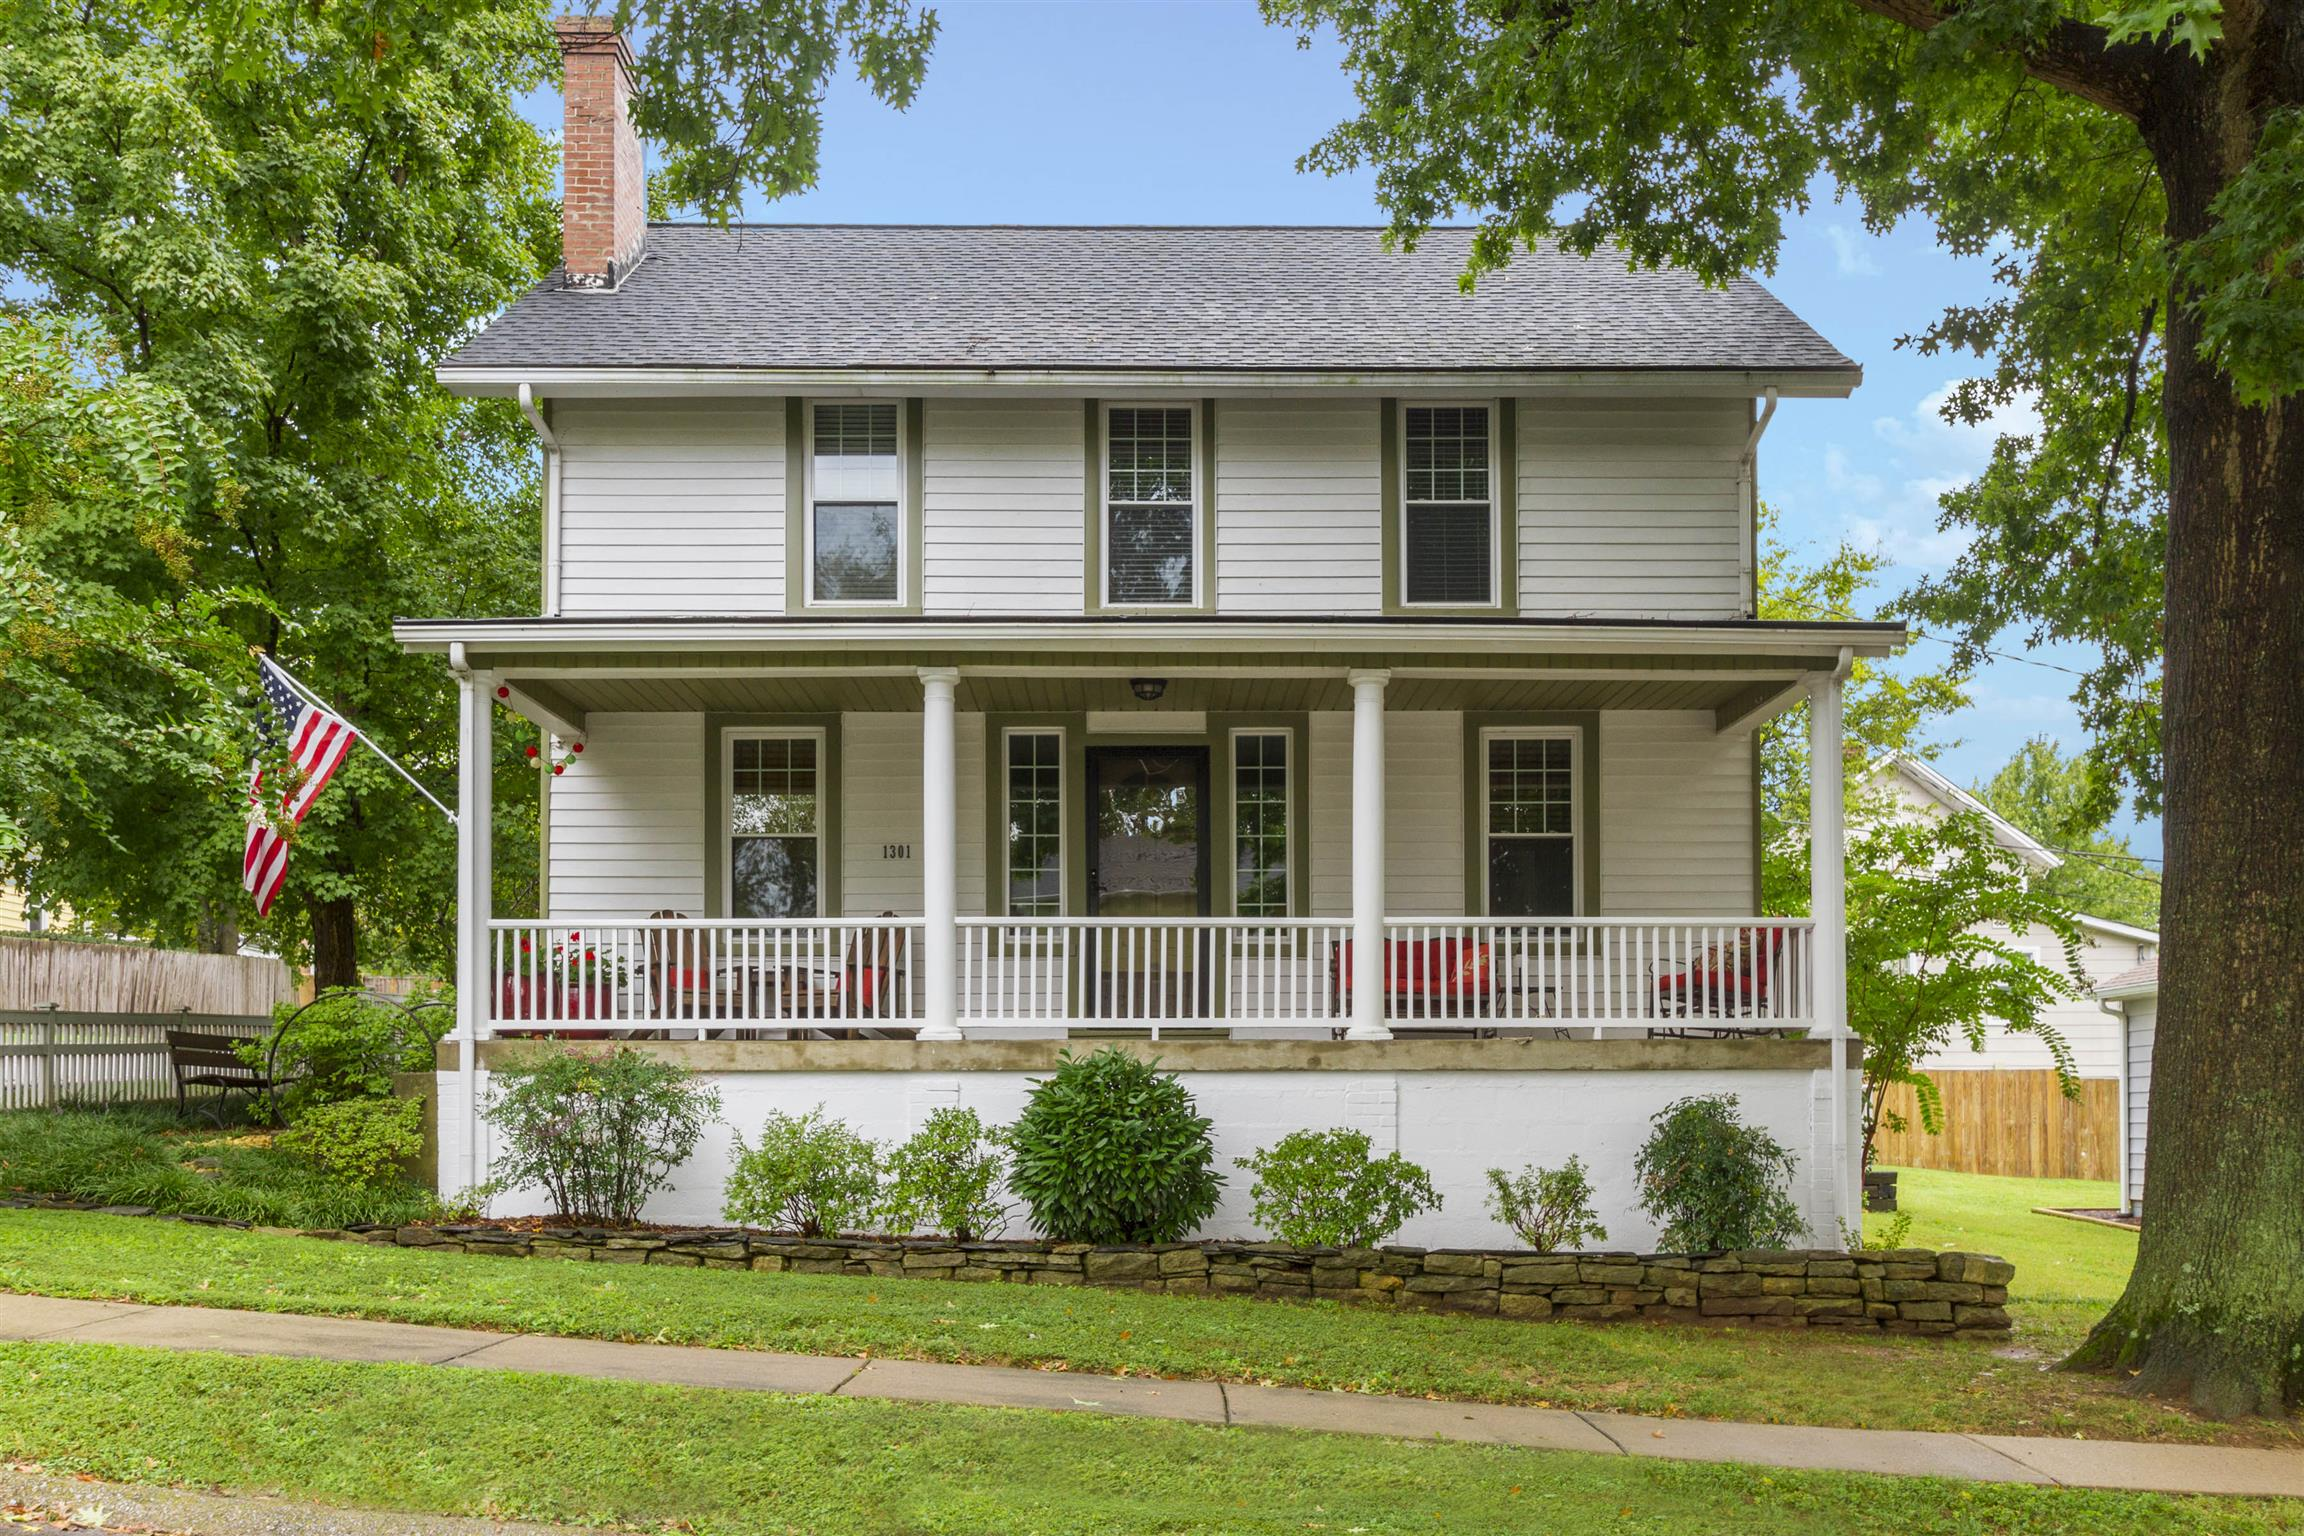 Photo of 1301 Birdsall St  Old Hickory  TN